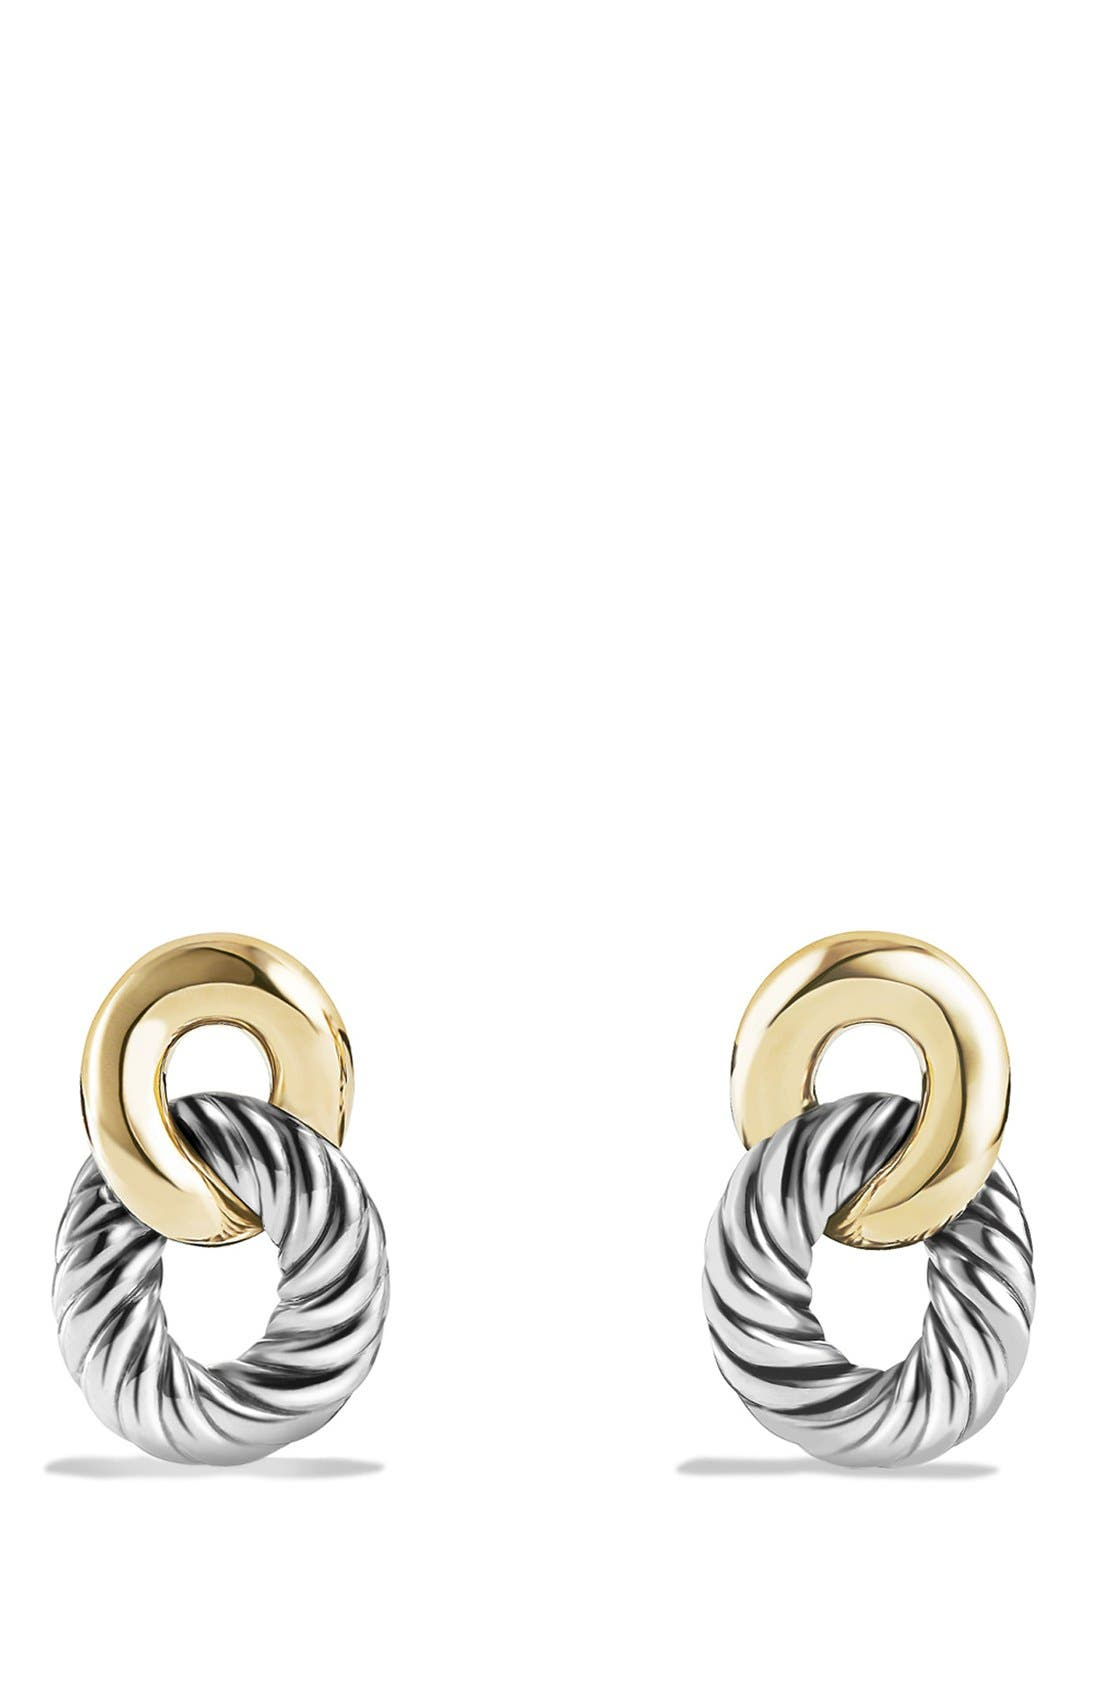 'Belmont' Curb Link Drop Earrings with 18K Gold,                             Main thumbnail 1, color,                             Two Tone